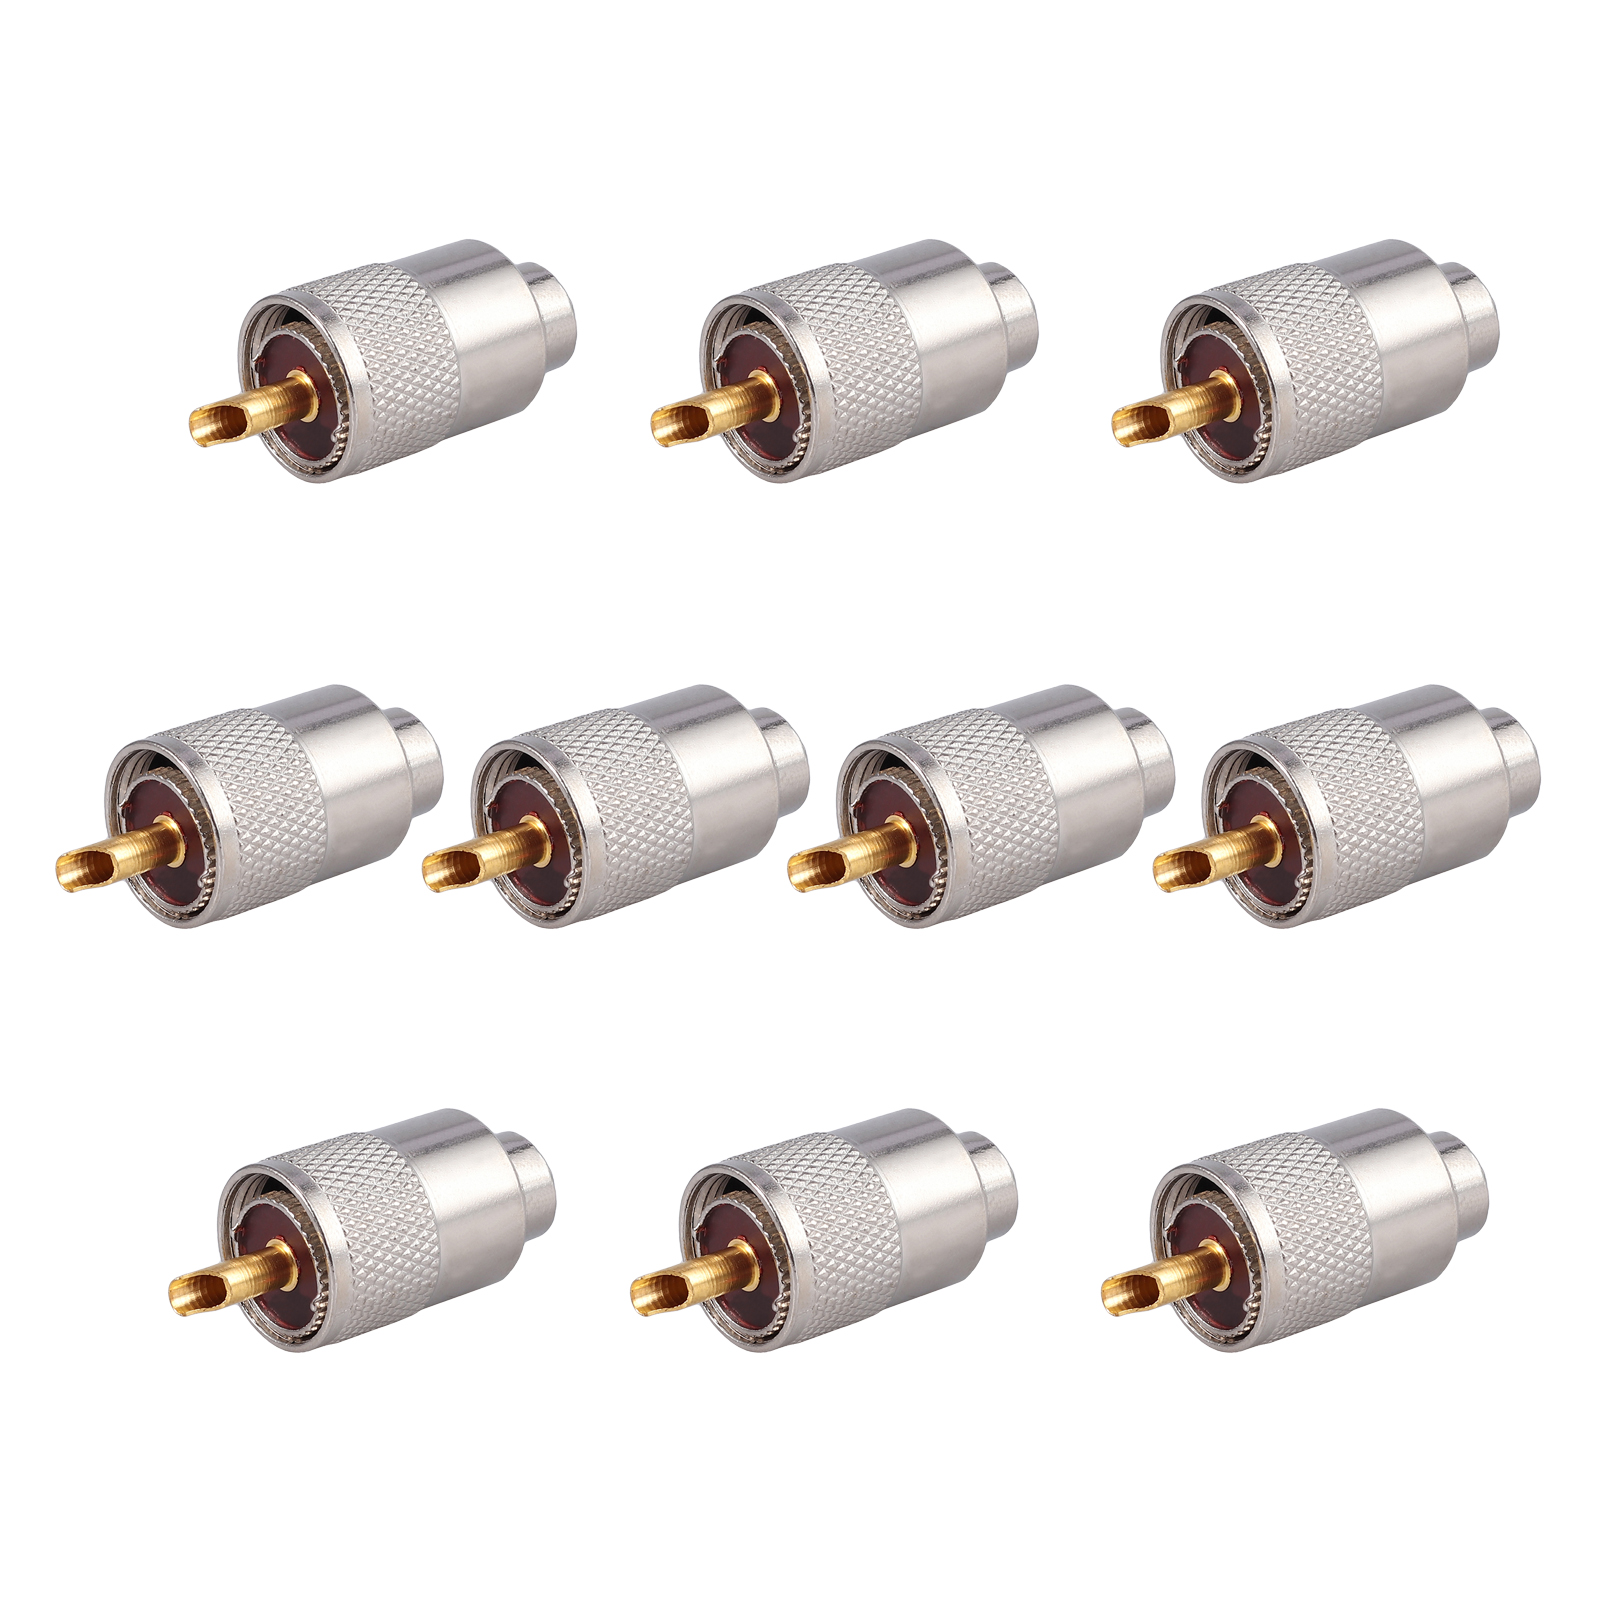 10Pcs PL259 Solder Connector Plug With Reducer for RG8X Coaxial Coax Cable STOCK